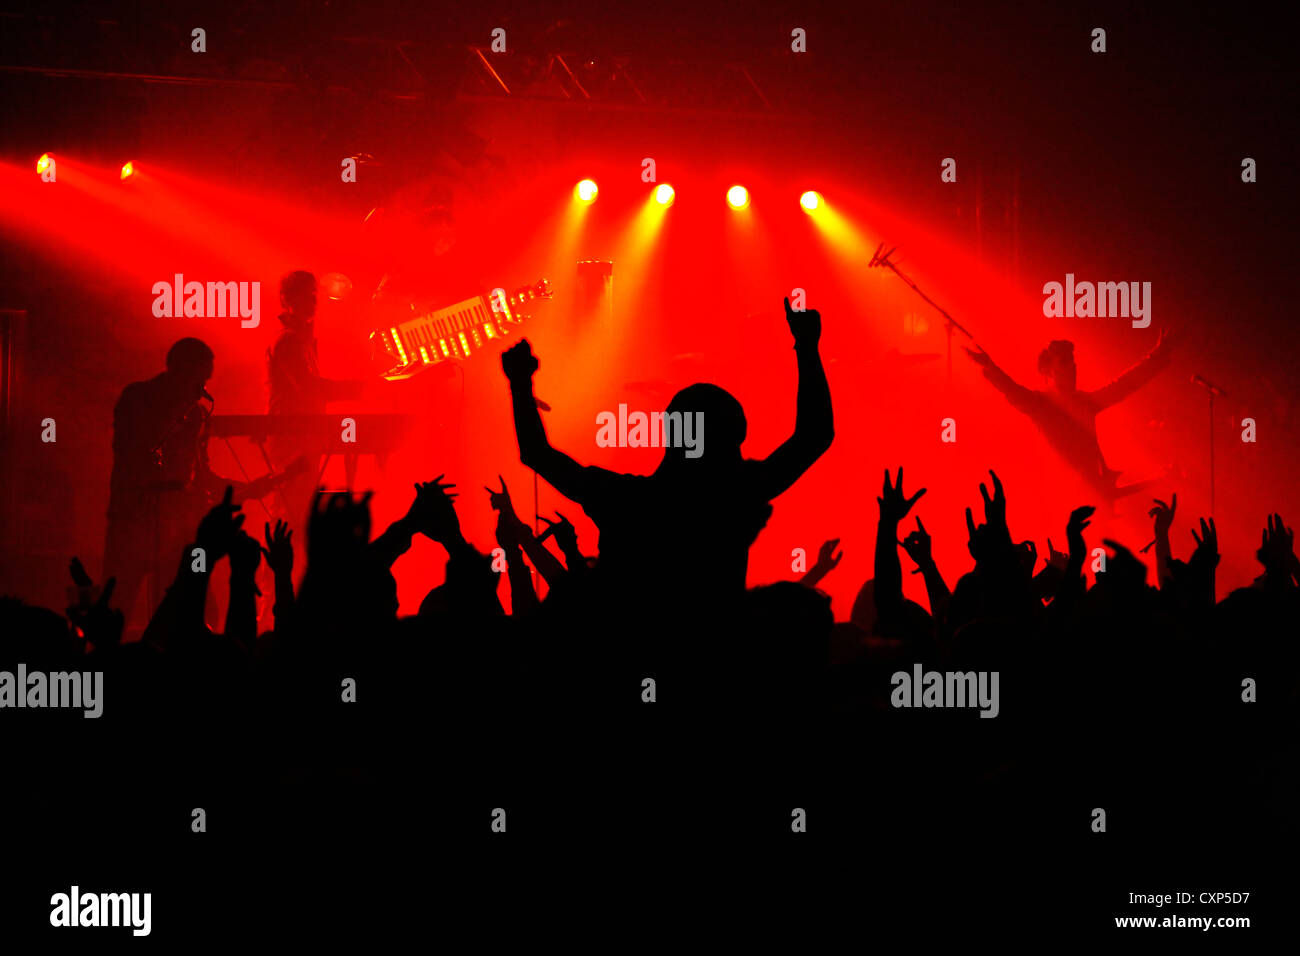 Silhouetted spectators / crowd and ambiance during live rock concert with rockers on stage illuminated by red spotlights - Stock Image